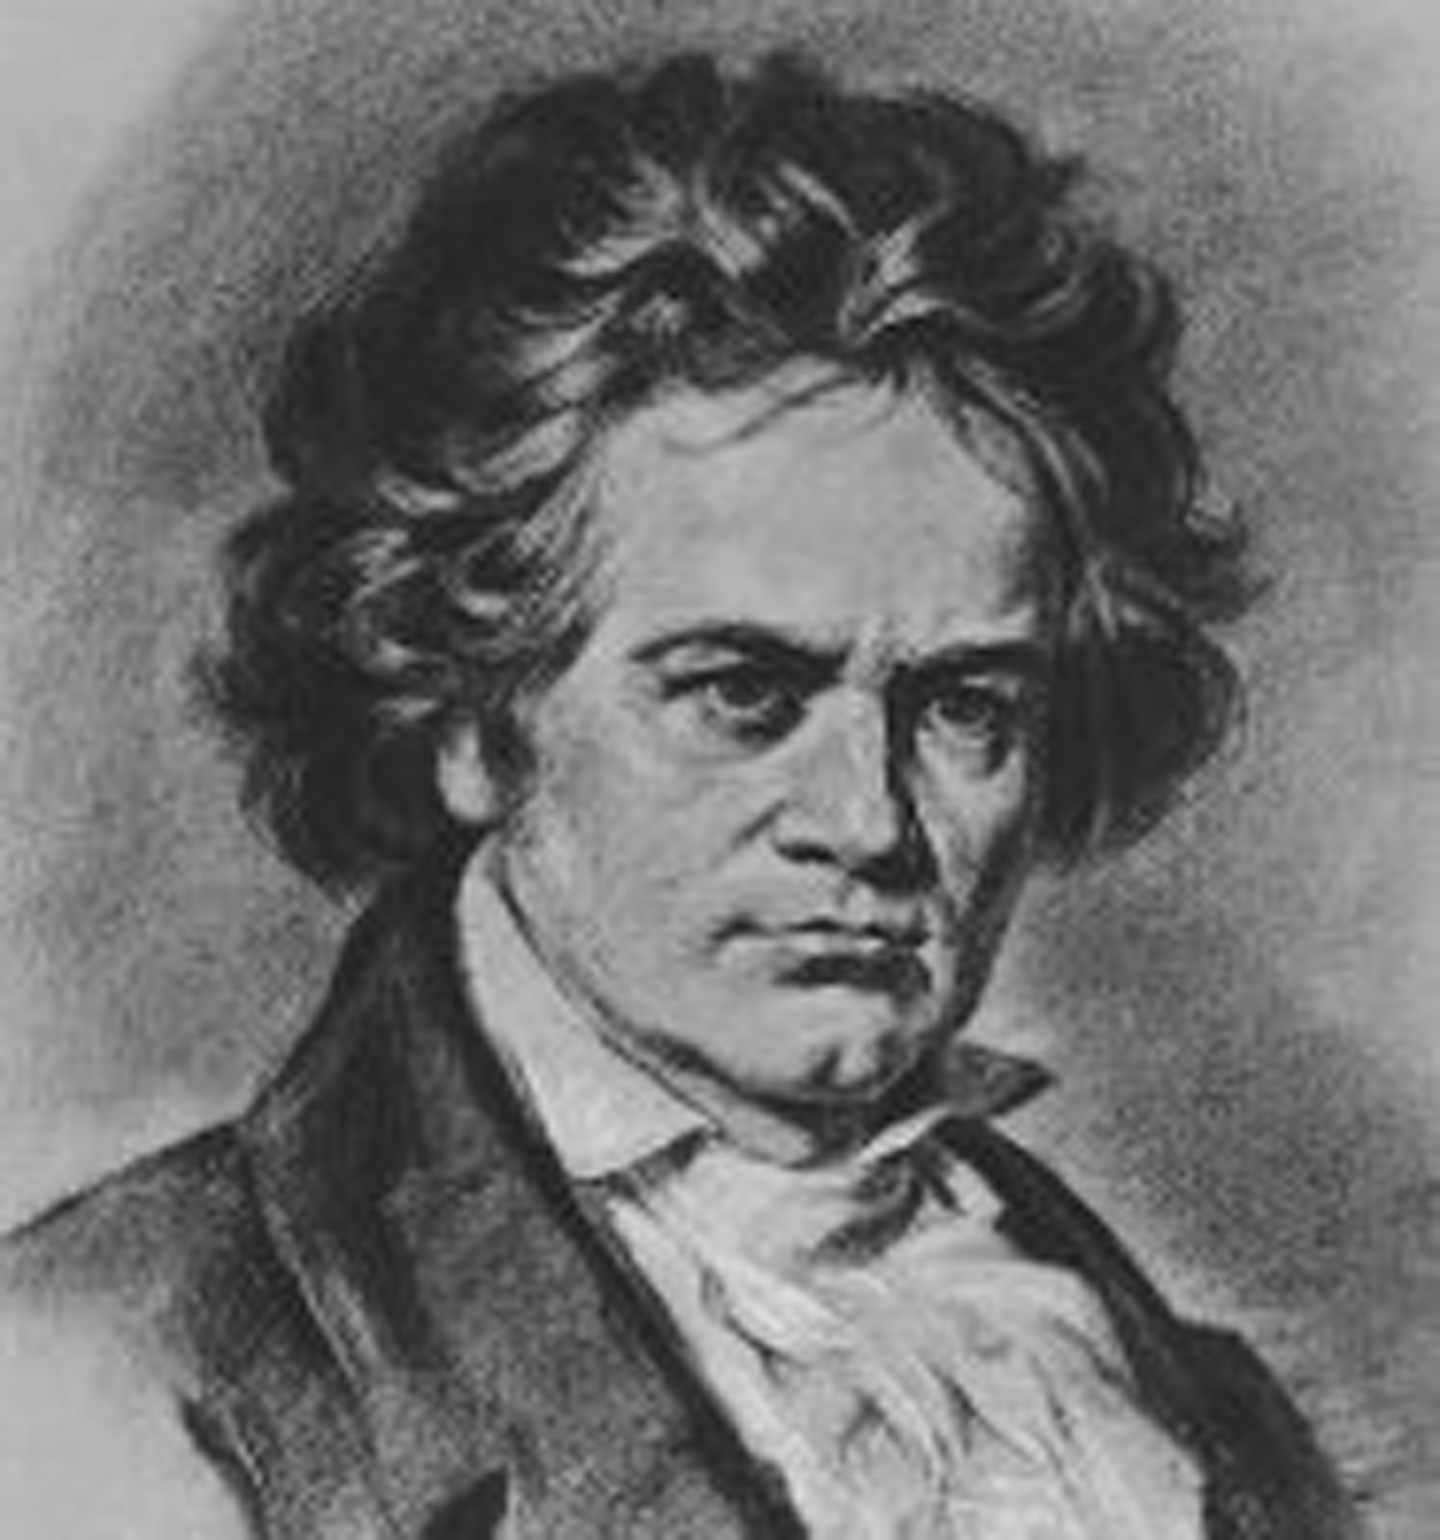 a biography of the early life and influence of ludwig van beethoven Ludwig van beethoven drawing by david levine  he has published influential  articles on the composer, some collected previously in  he has chosen to make  his first major statement in the form of a life-and-works study  and indeed to  make his peace with the inherent problems of artistic biography.